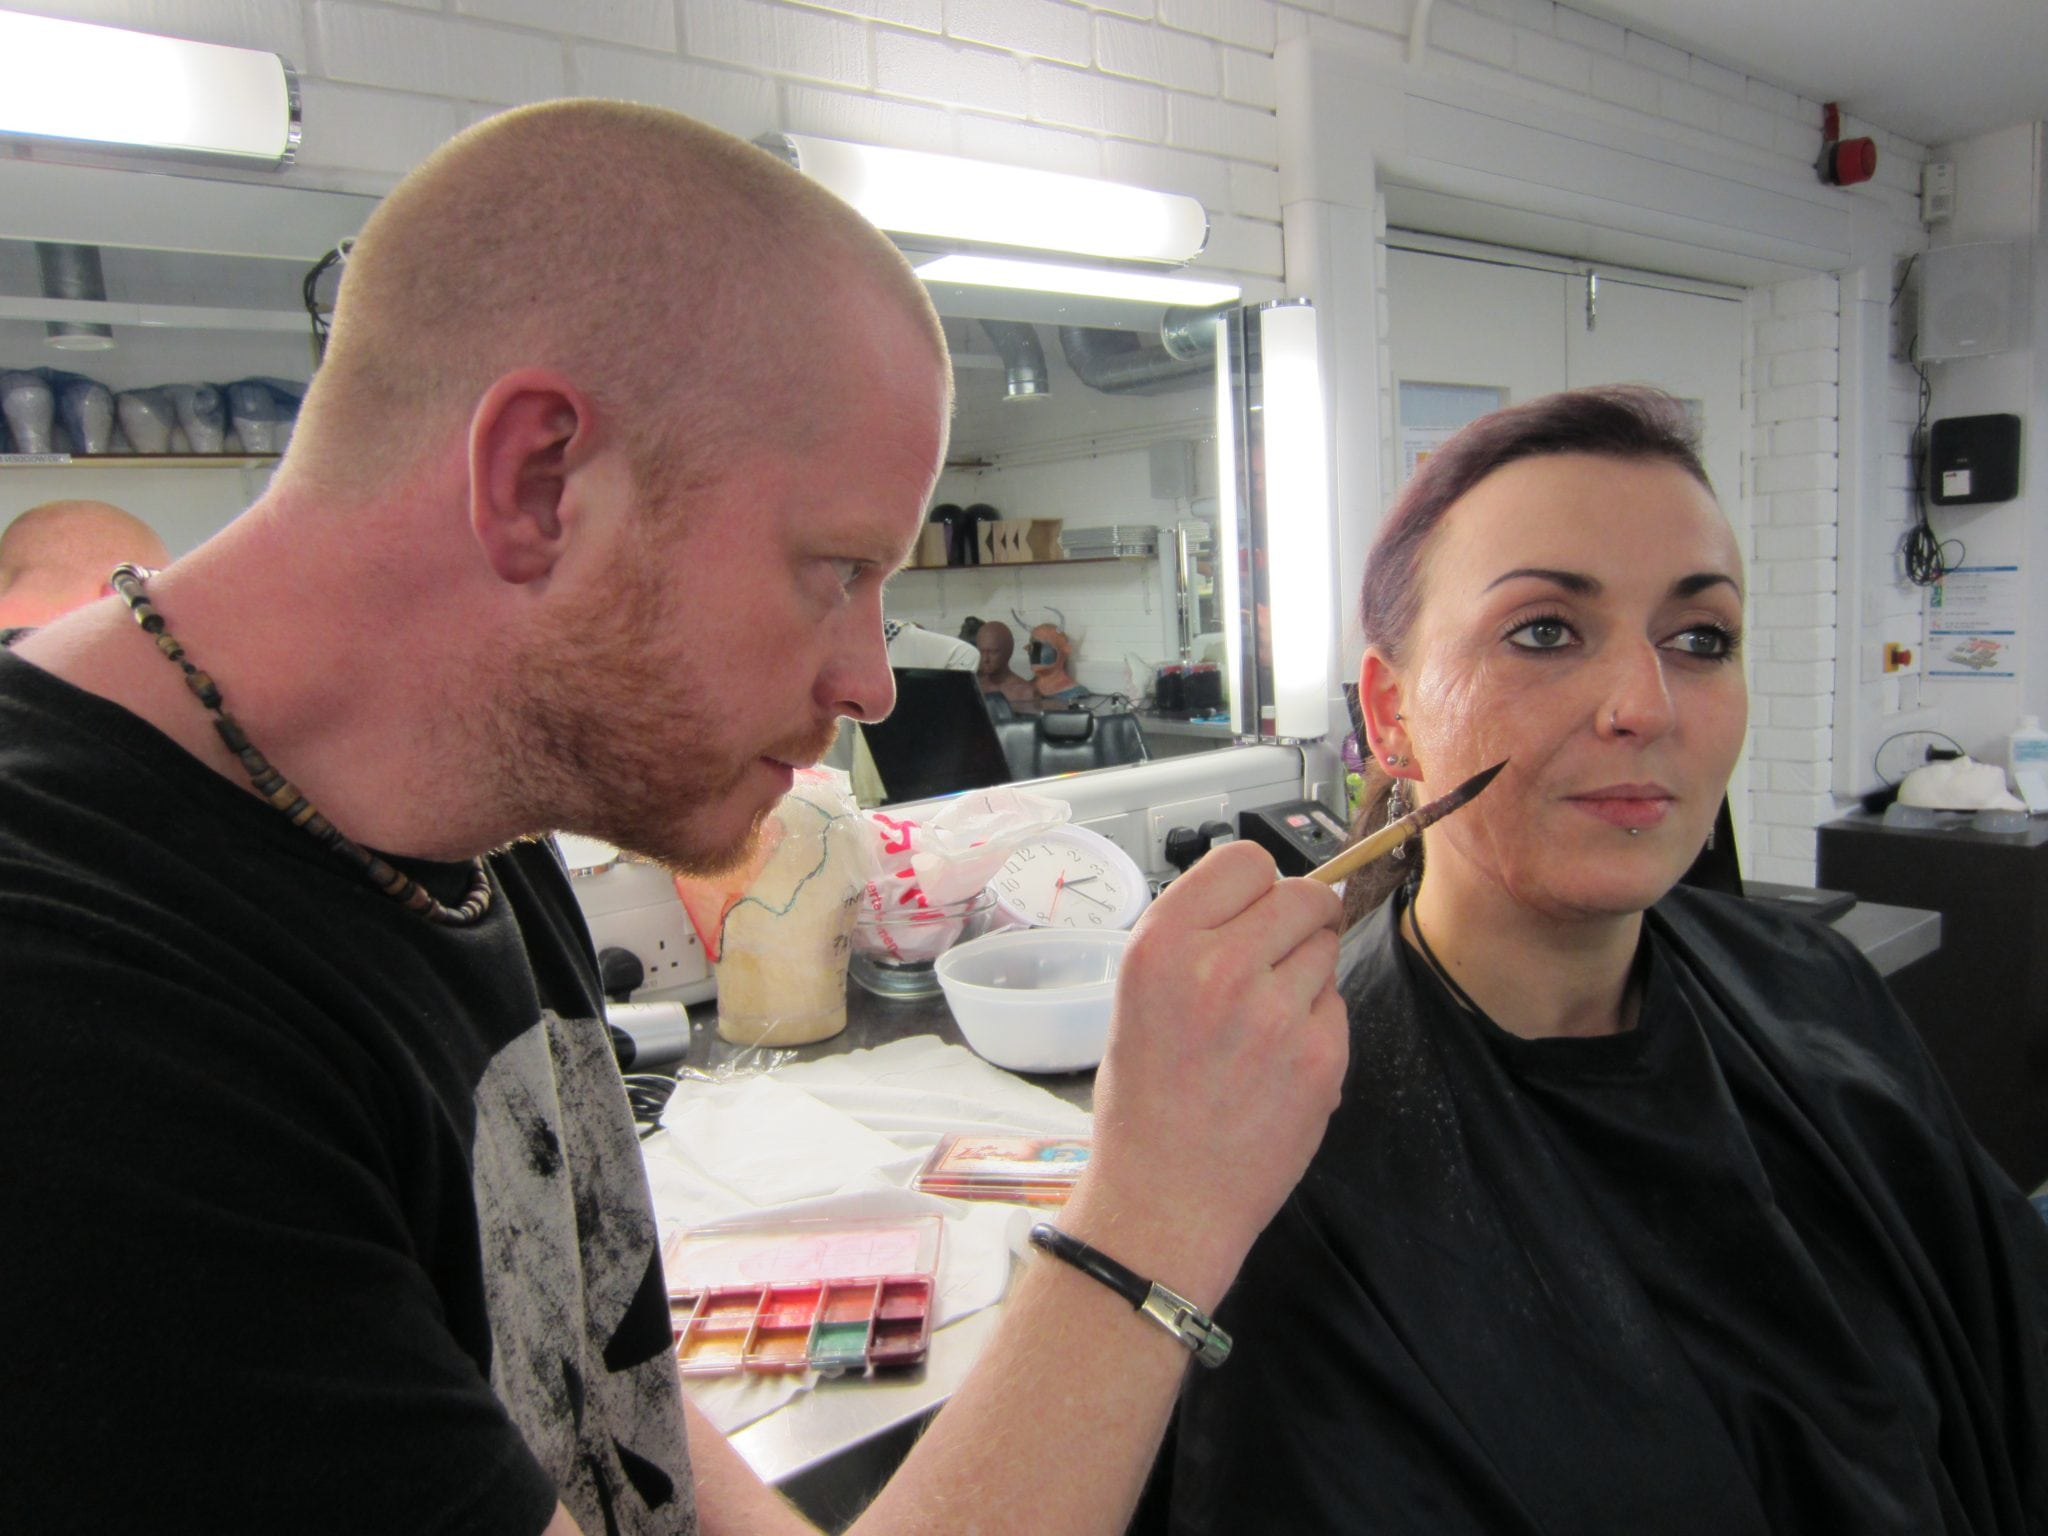 'Guardians of the Galaxy' Make-up Artist Jon Moore at AUB